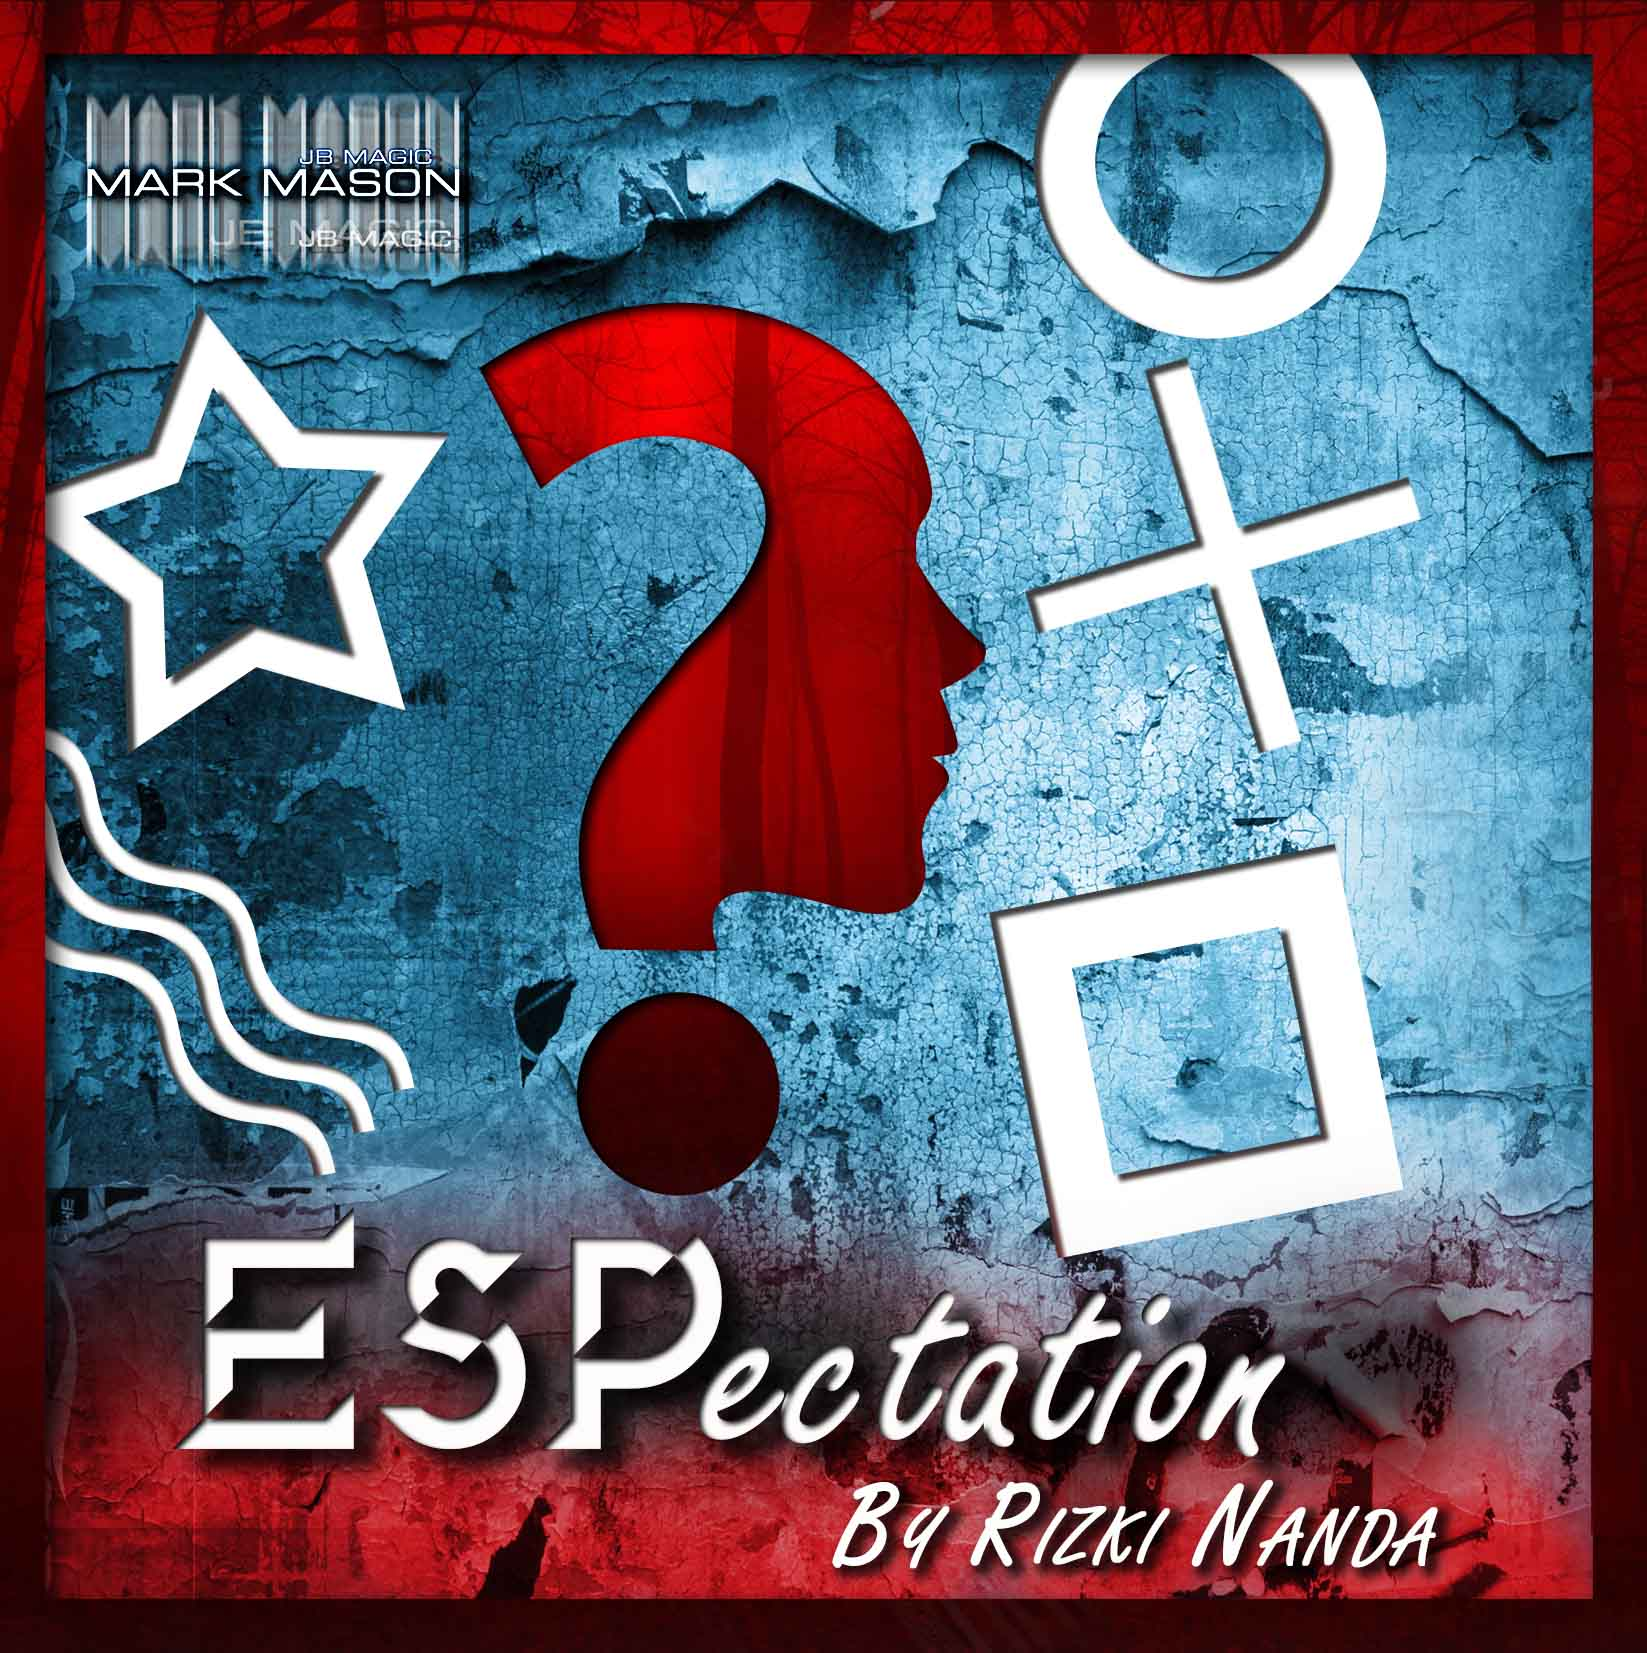 ESP-Ectation by Rizki Nanda (4216-w6)